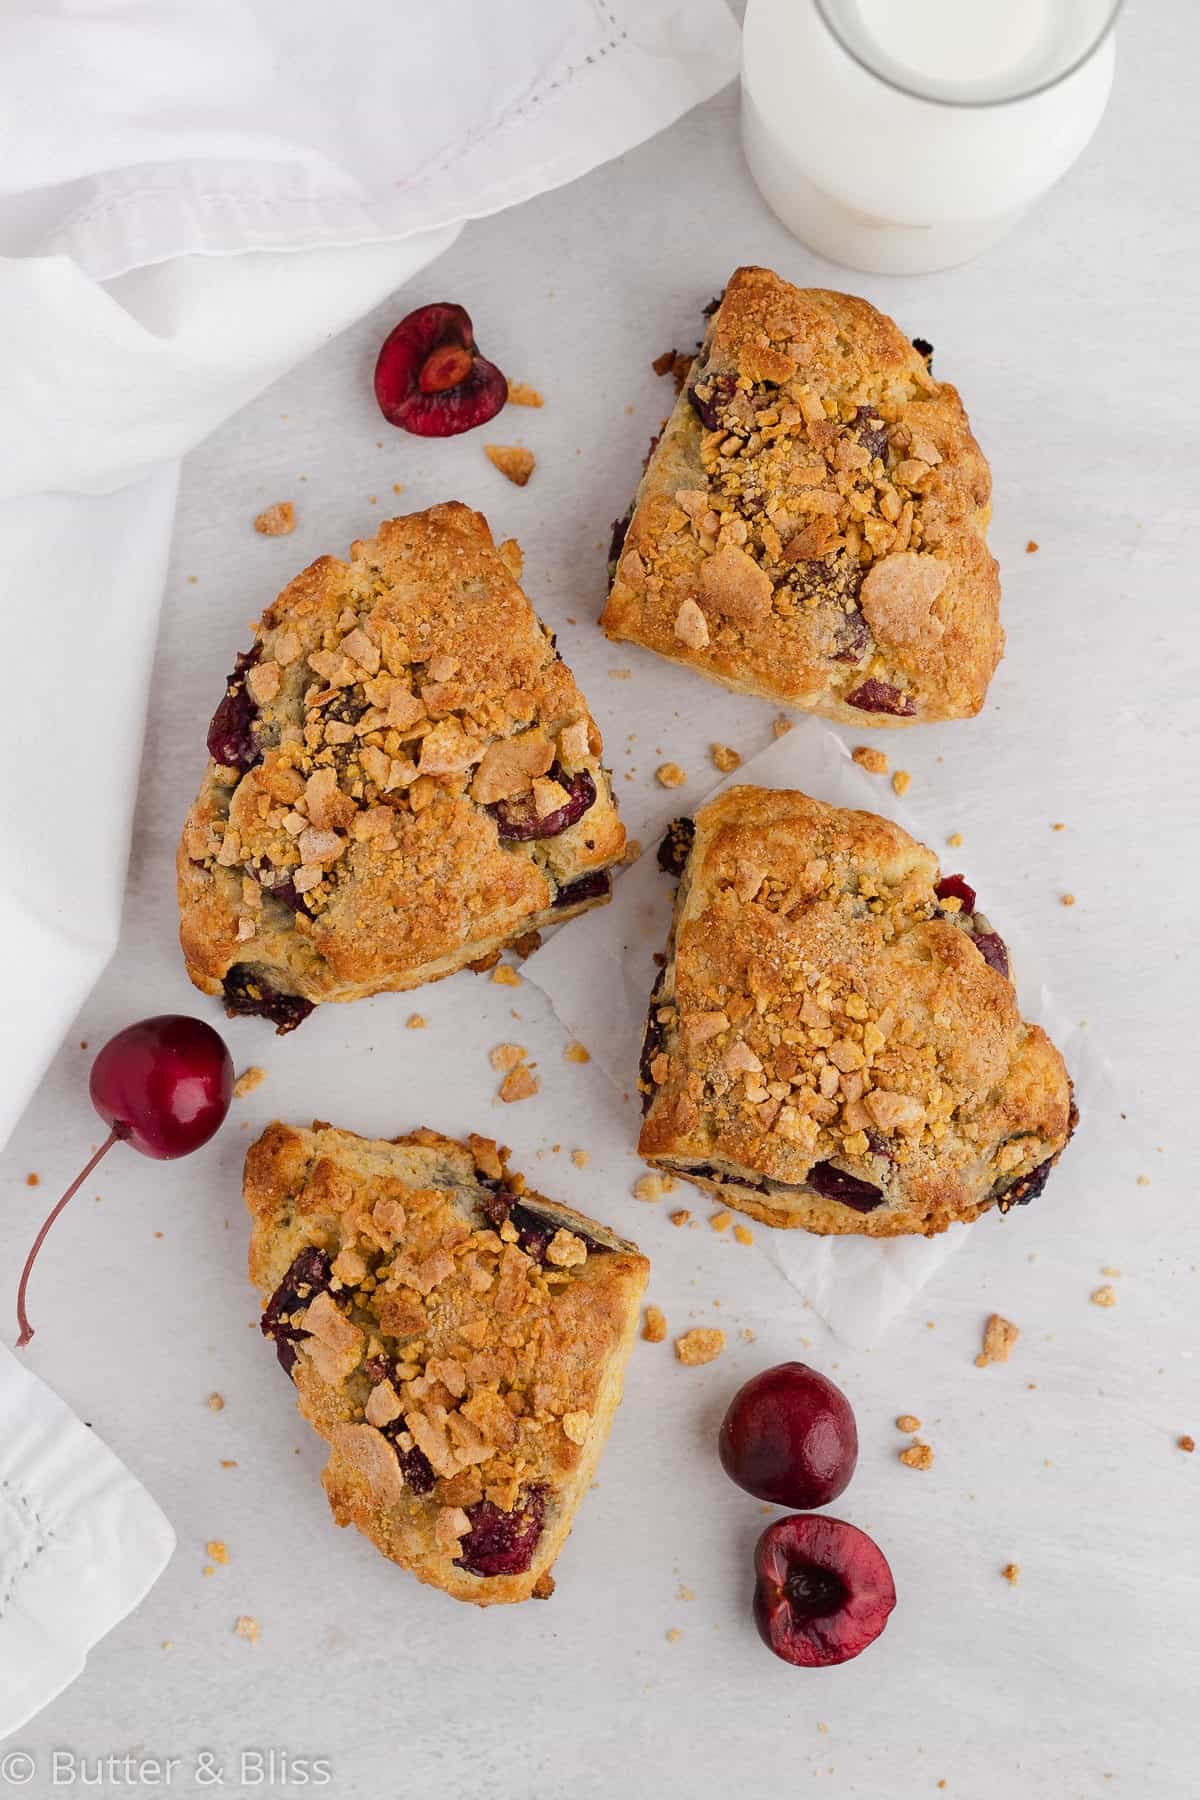 Four cherry scones on a table with fresh cherries